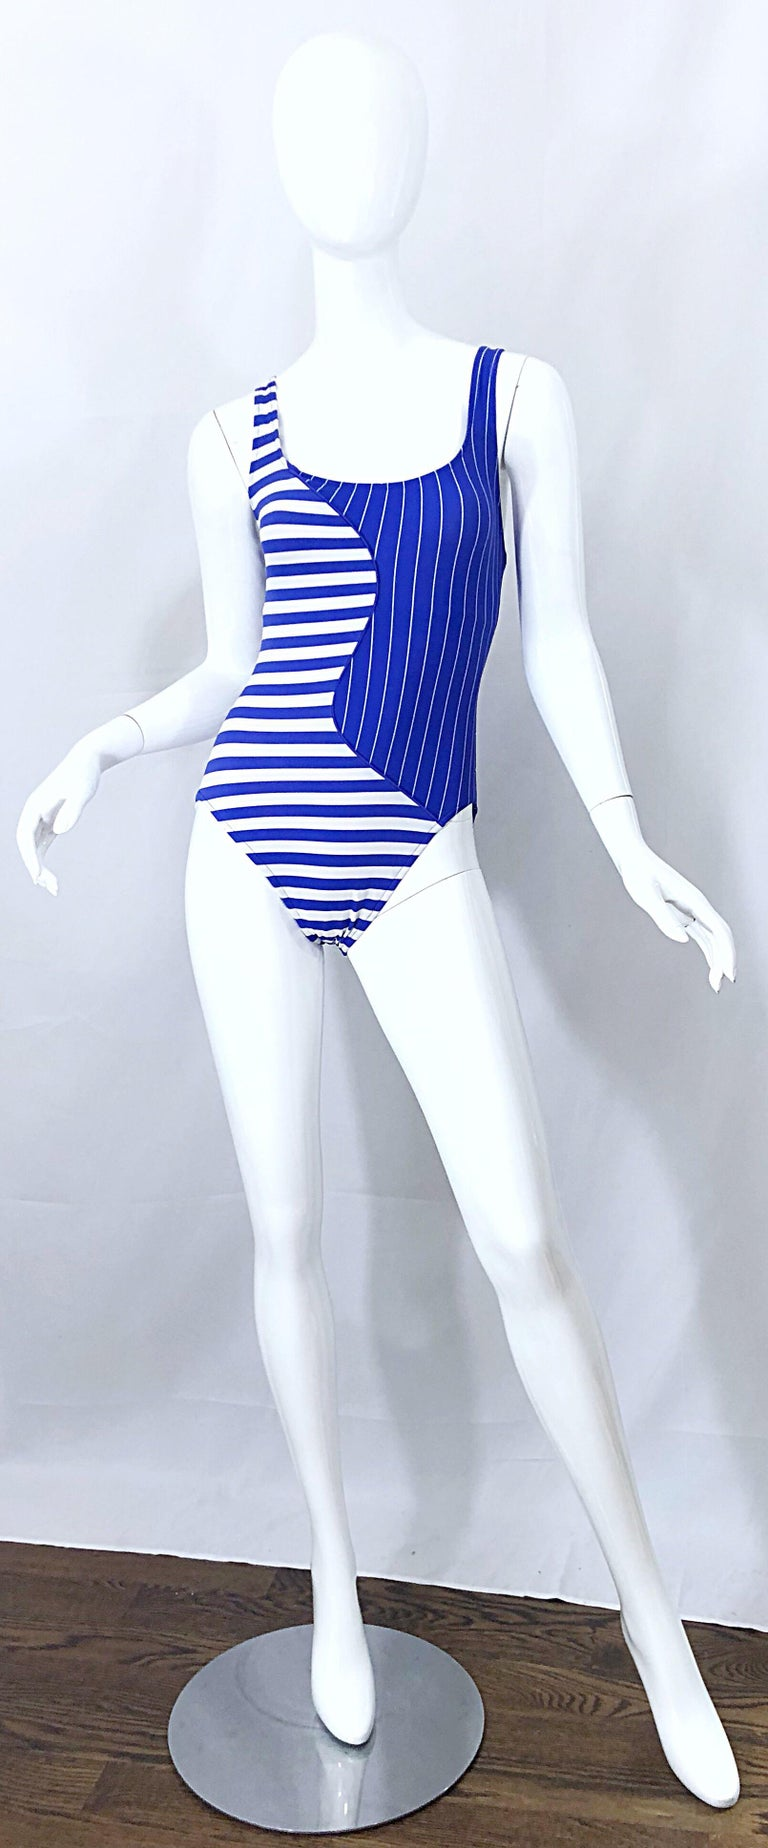 Vintage Bill Blass 1990s Nautical Blue White Striped One Piece Swimsuit Bodysuit For Sale 8